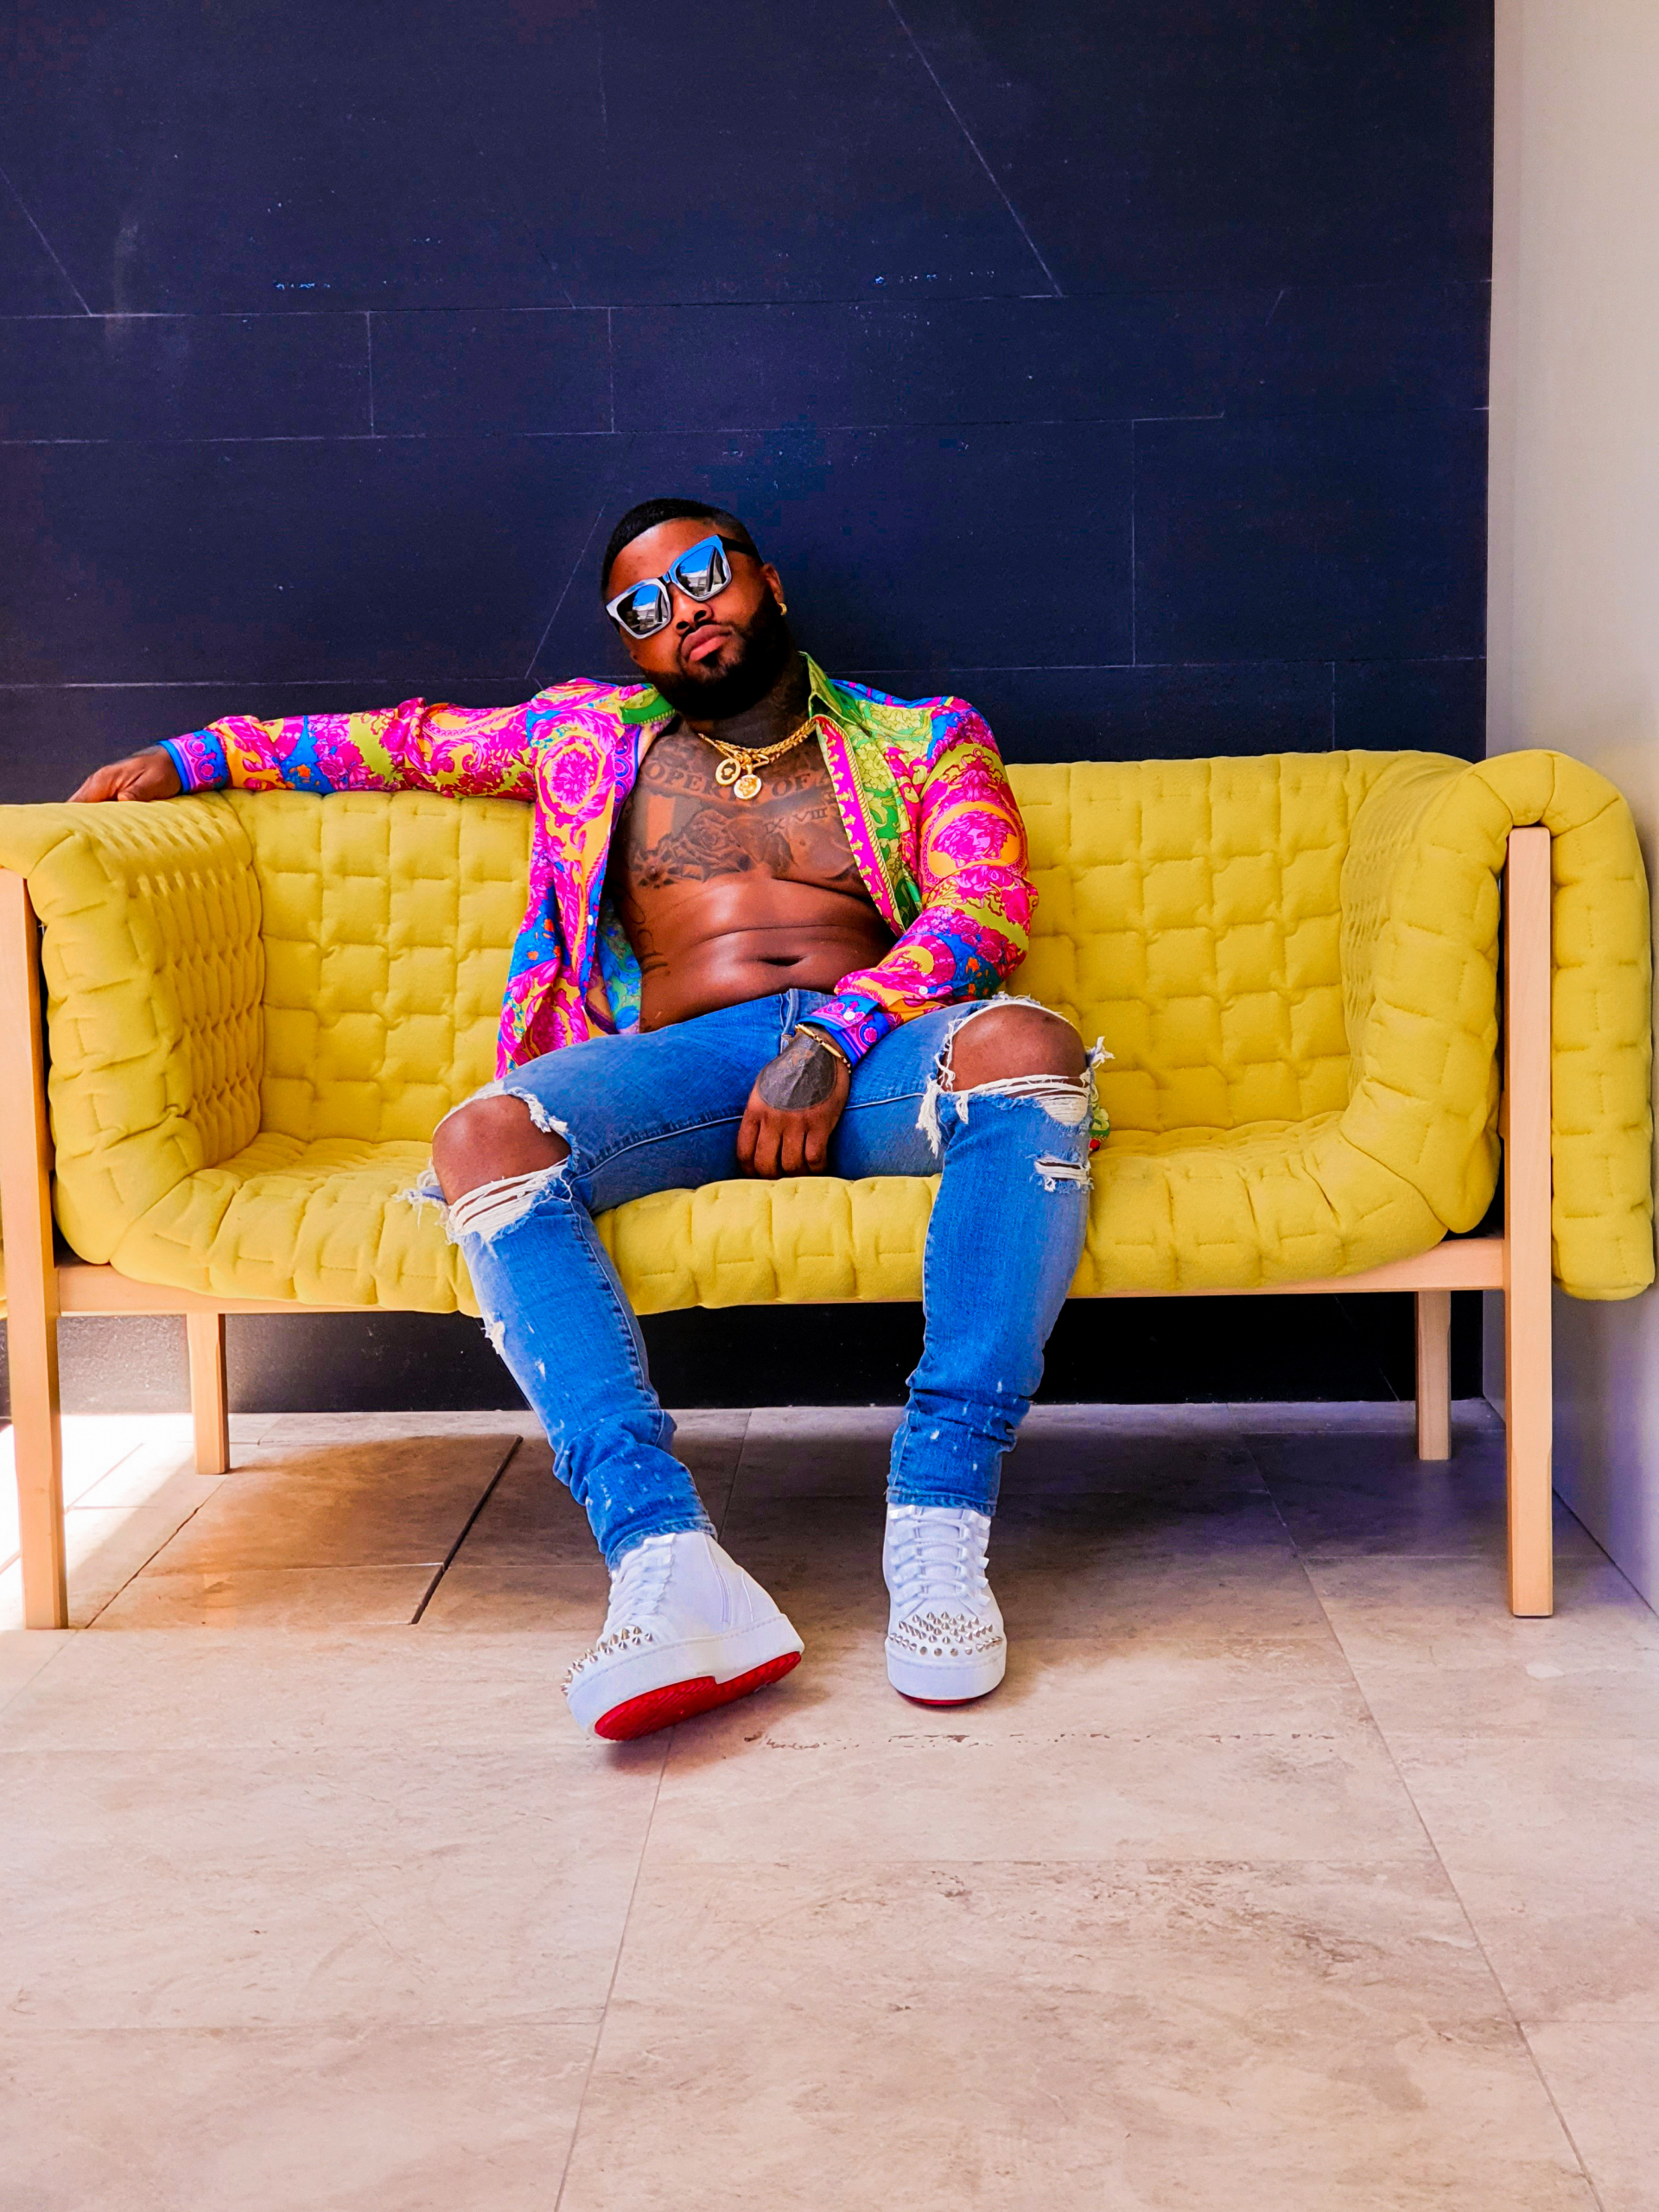 Jhehlah Talks About His New Single 'Short Skirt', Inspirations, Looks And More